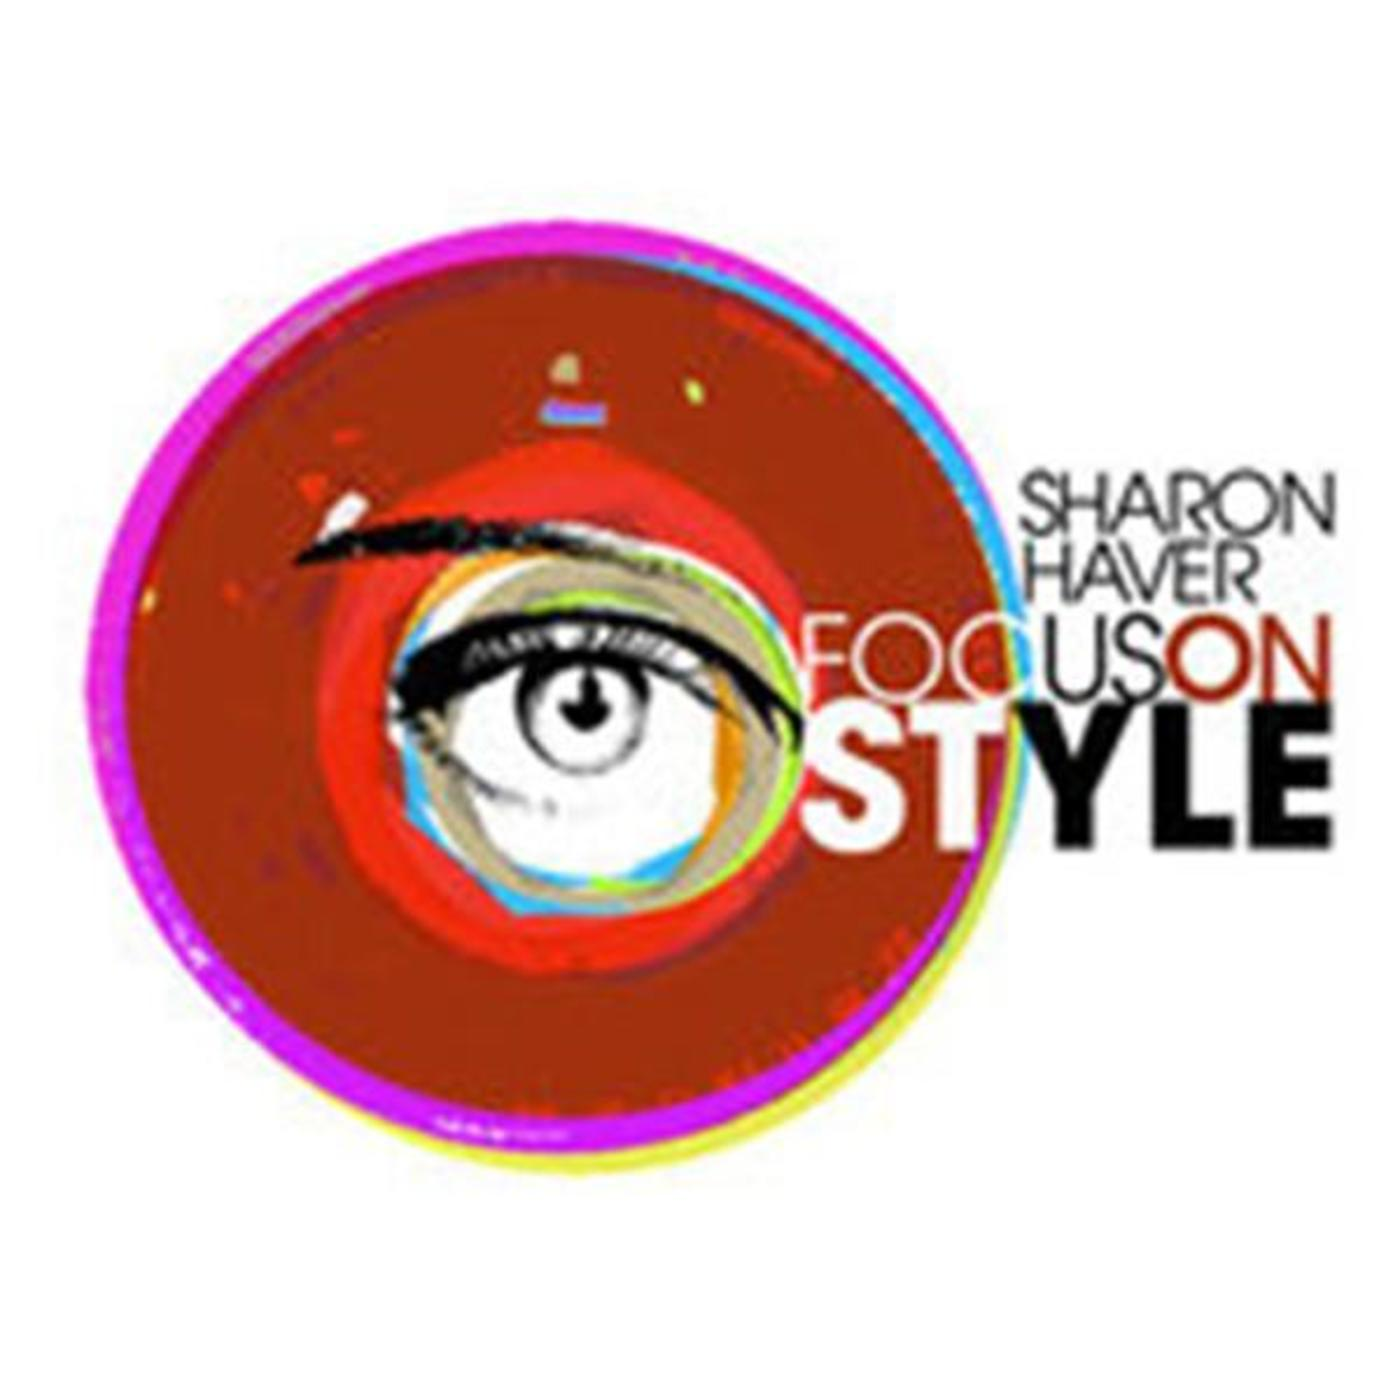 Focus on Style with Sharon Haver & Brad Boles